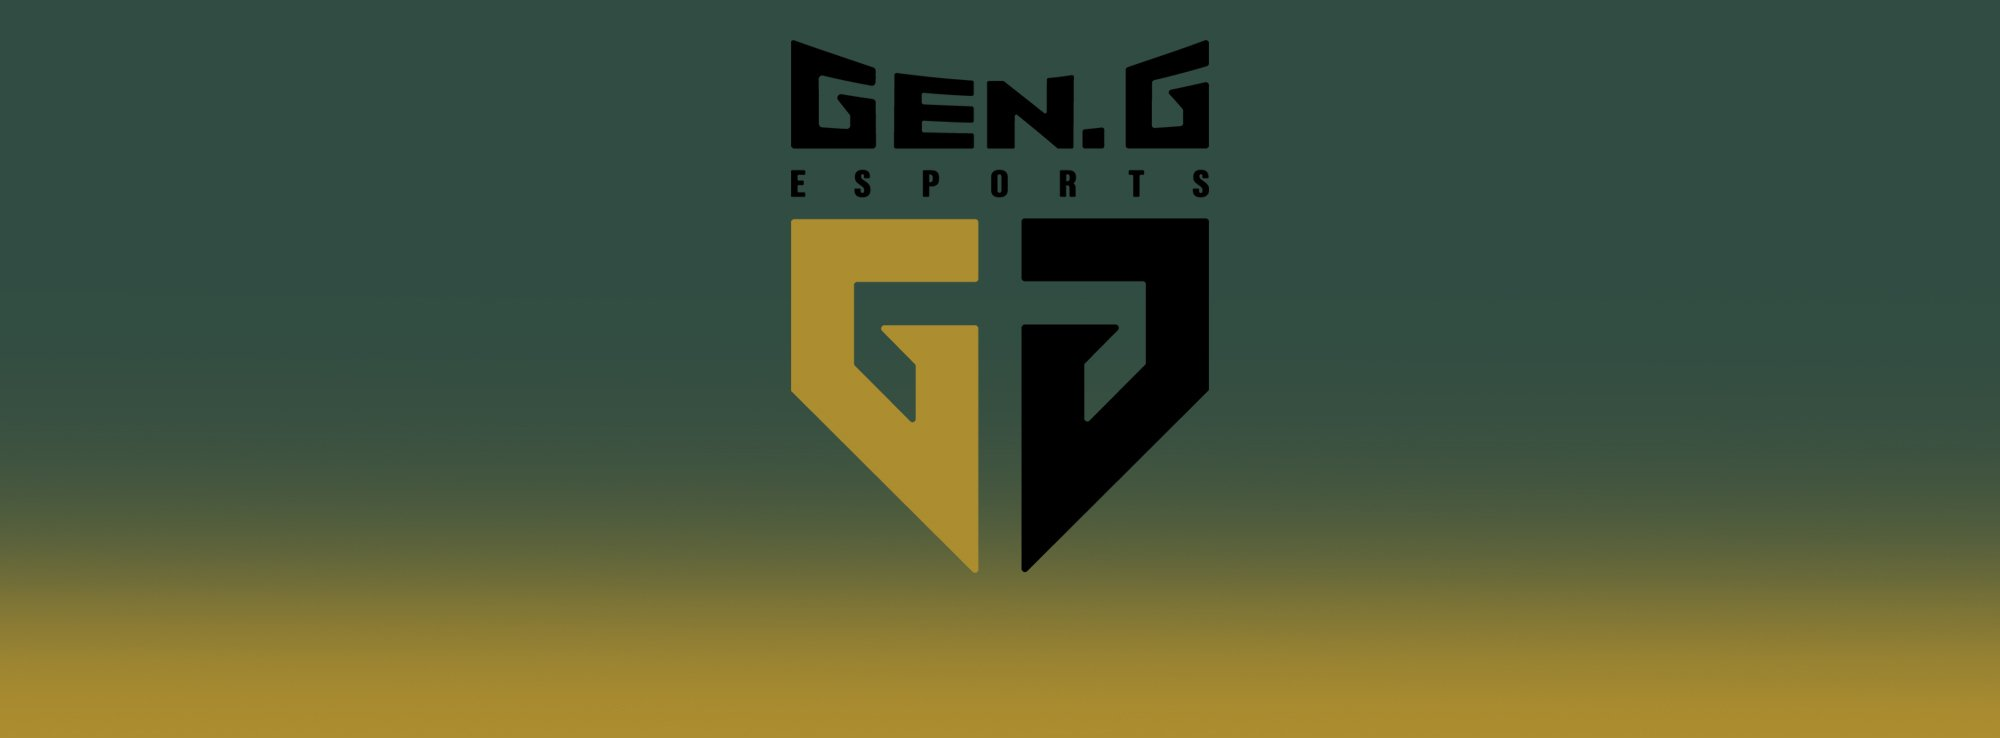 CS:GO – Damian 'daps' Steele Announces His Leave From Gen. G Once They Find A New Fifth